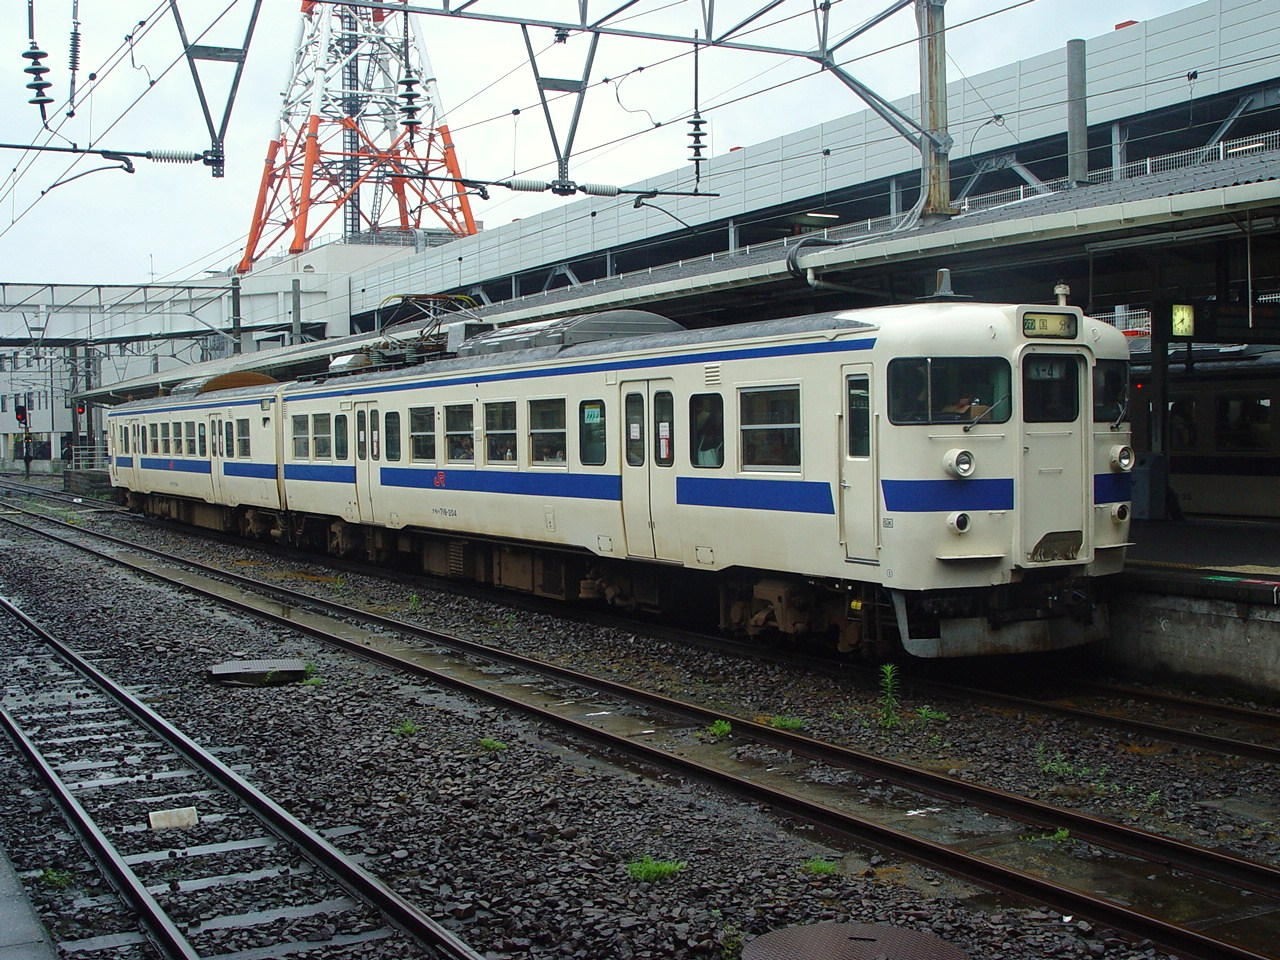 https://upload.wikimedia.org/wikipedia/commons/9/9c/717-200_HK204_Kagoshima-Chuo_20060523.JPG